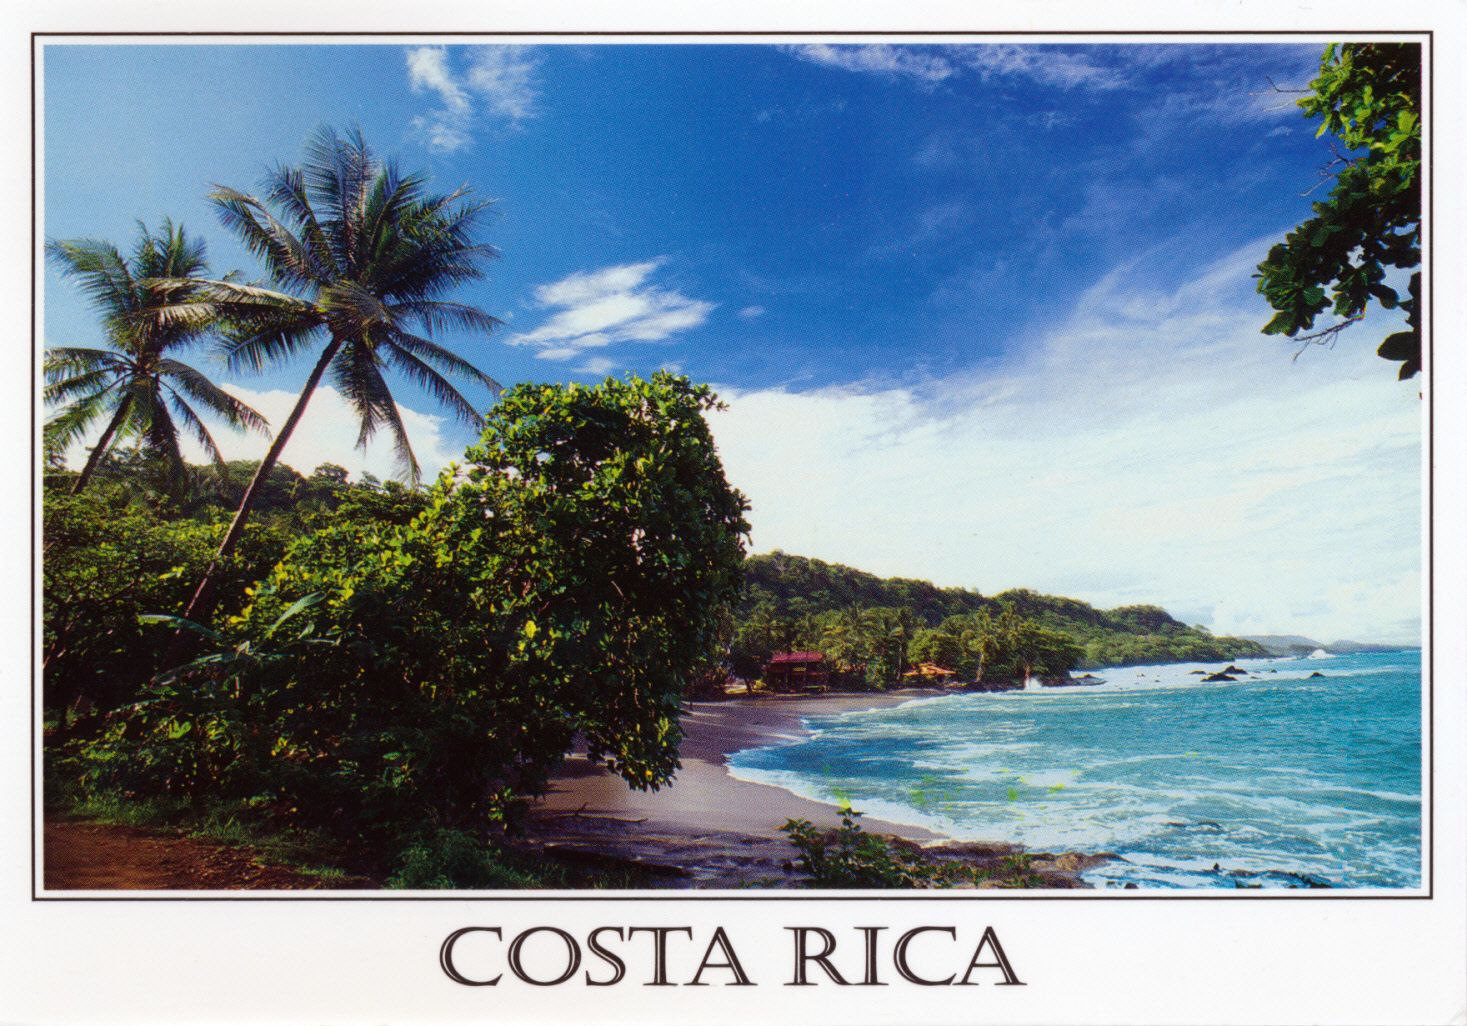 Costa Rica Postcard From Marcela In Costa Rica Postcards For